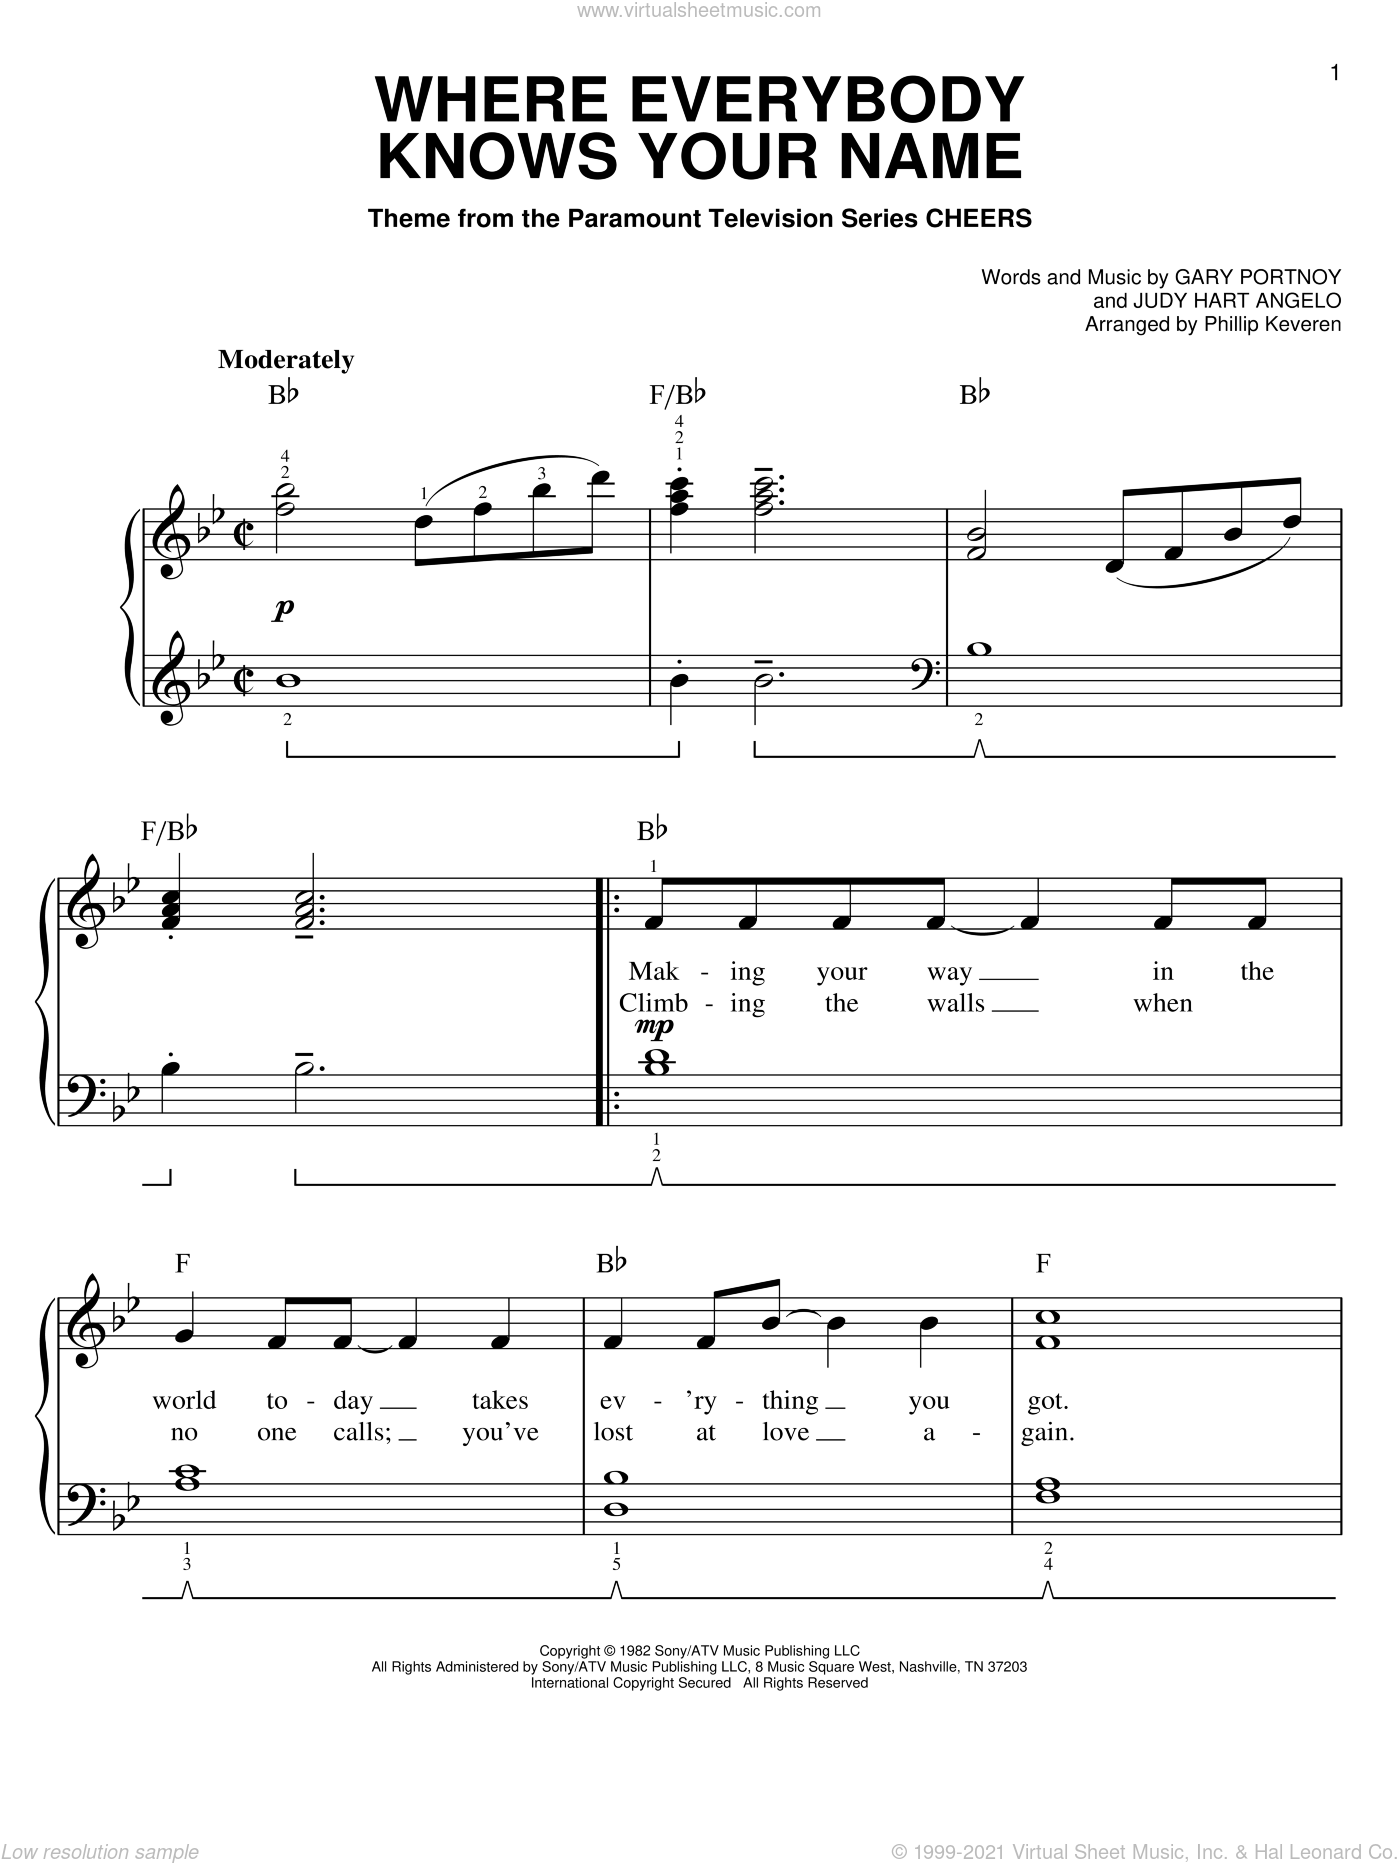 Where Everybody Knows Your Name sheet music for piano solo (chords) by Judy Hart Angelo